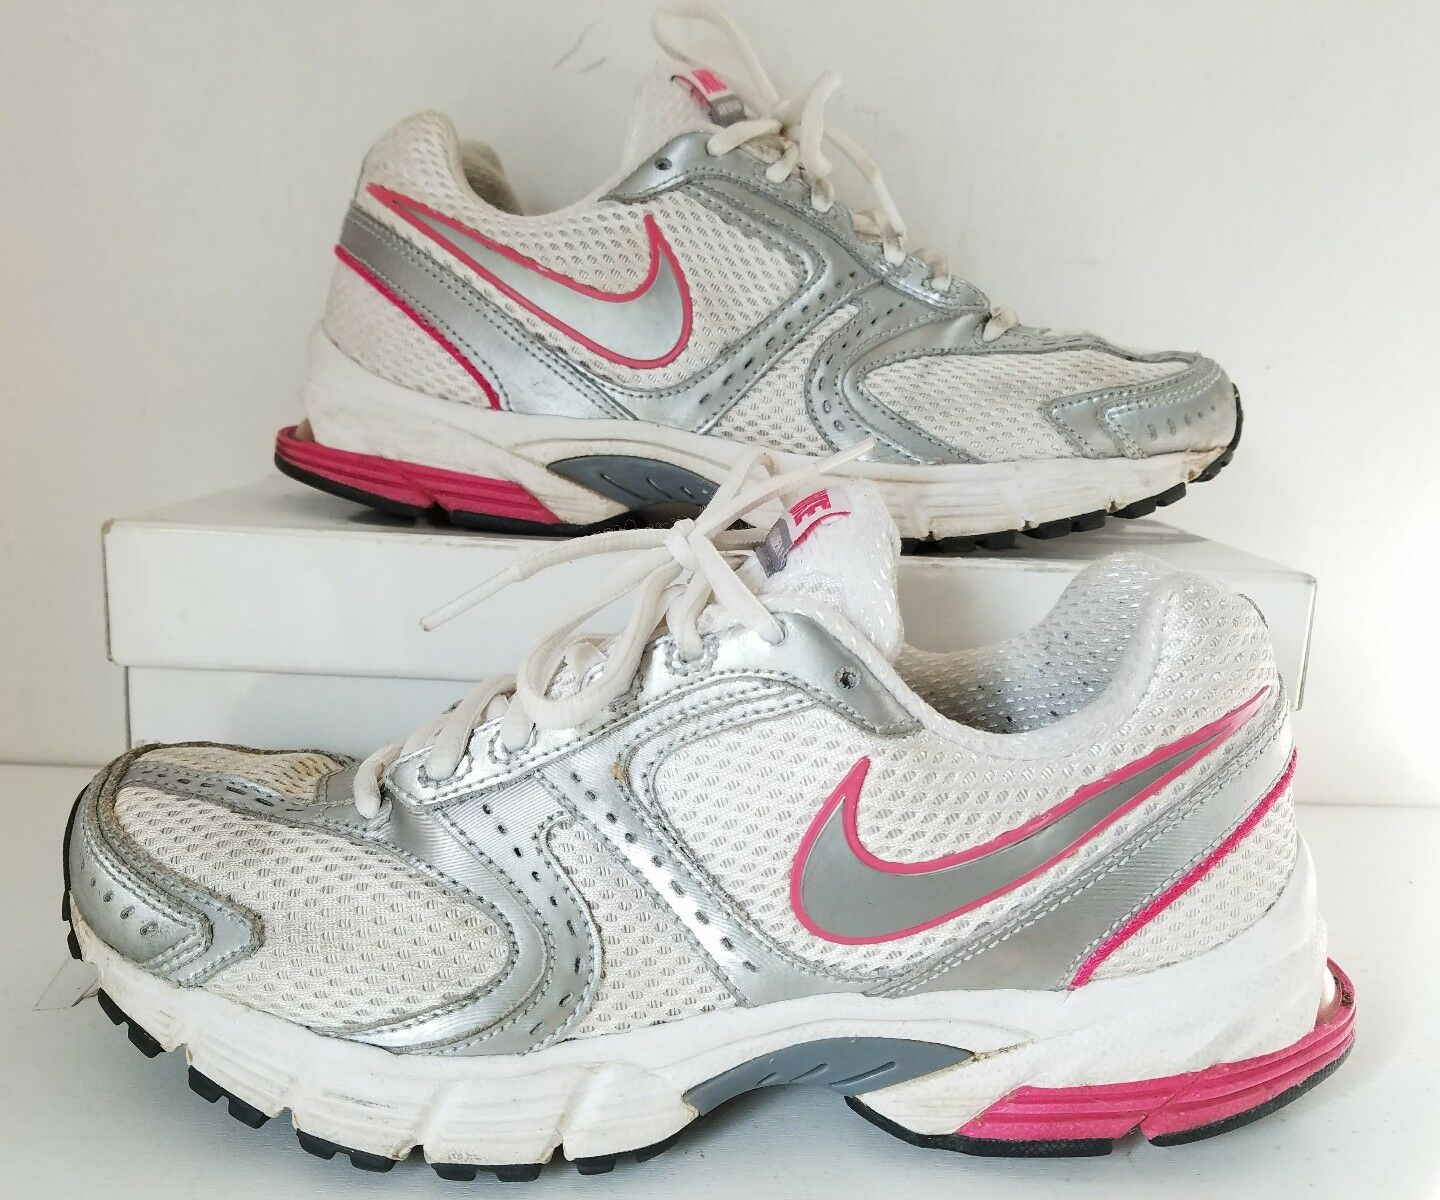 NIKE AIR SKYRAIDER 2 RUNNING TRAINING SHOE 386511 Women Price reduction New shoes for men and women, limited time discount